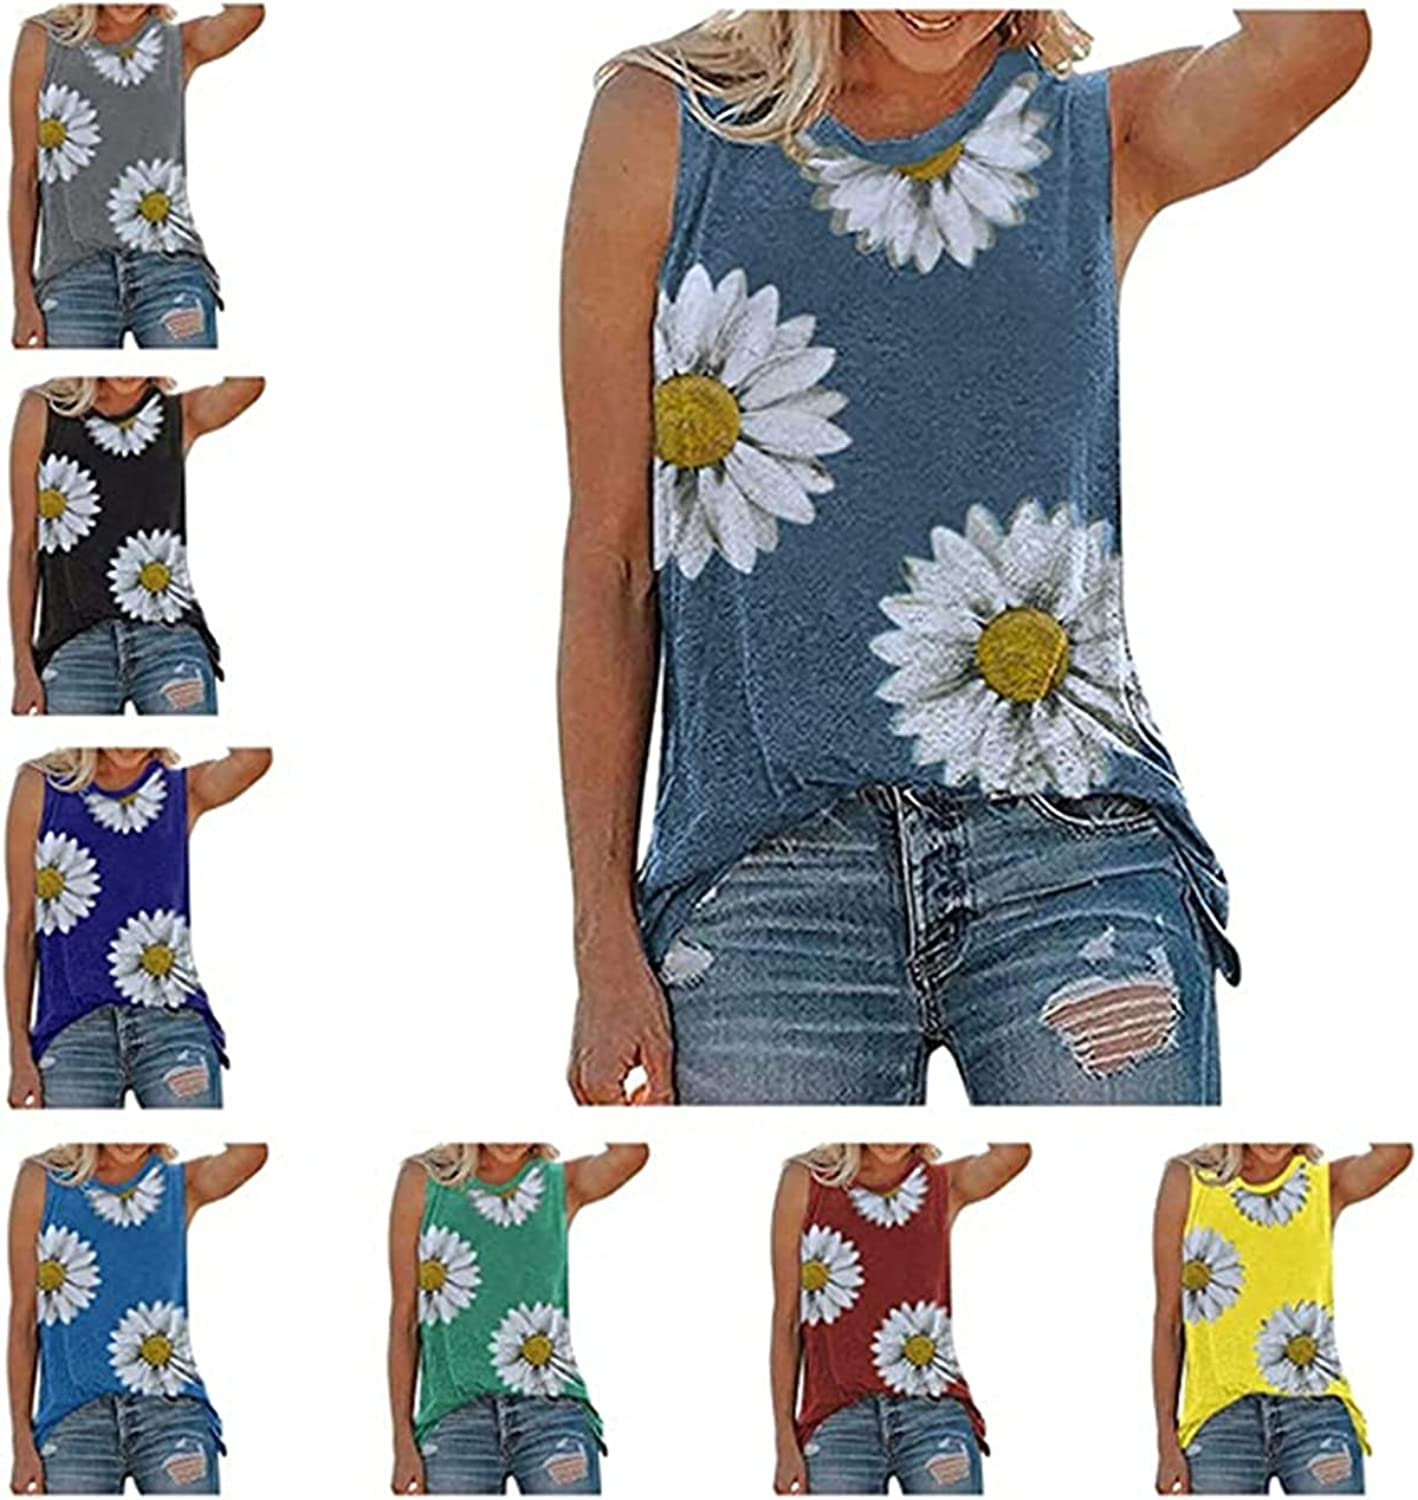 Tank Tops for Women Loose Fit,Womens Summer Tops Casual Loose Fit Plus Size Sunflower Printed Tee Shirts